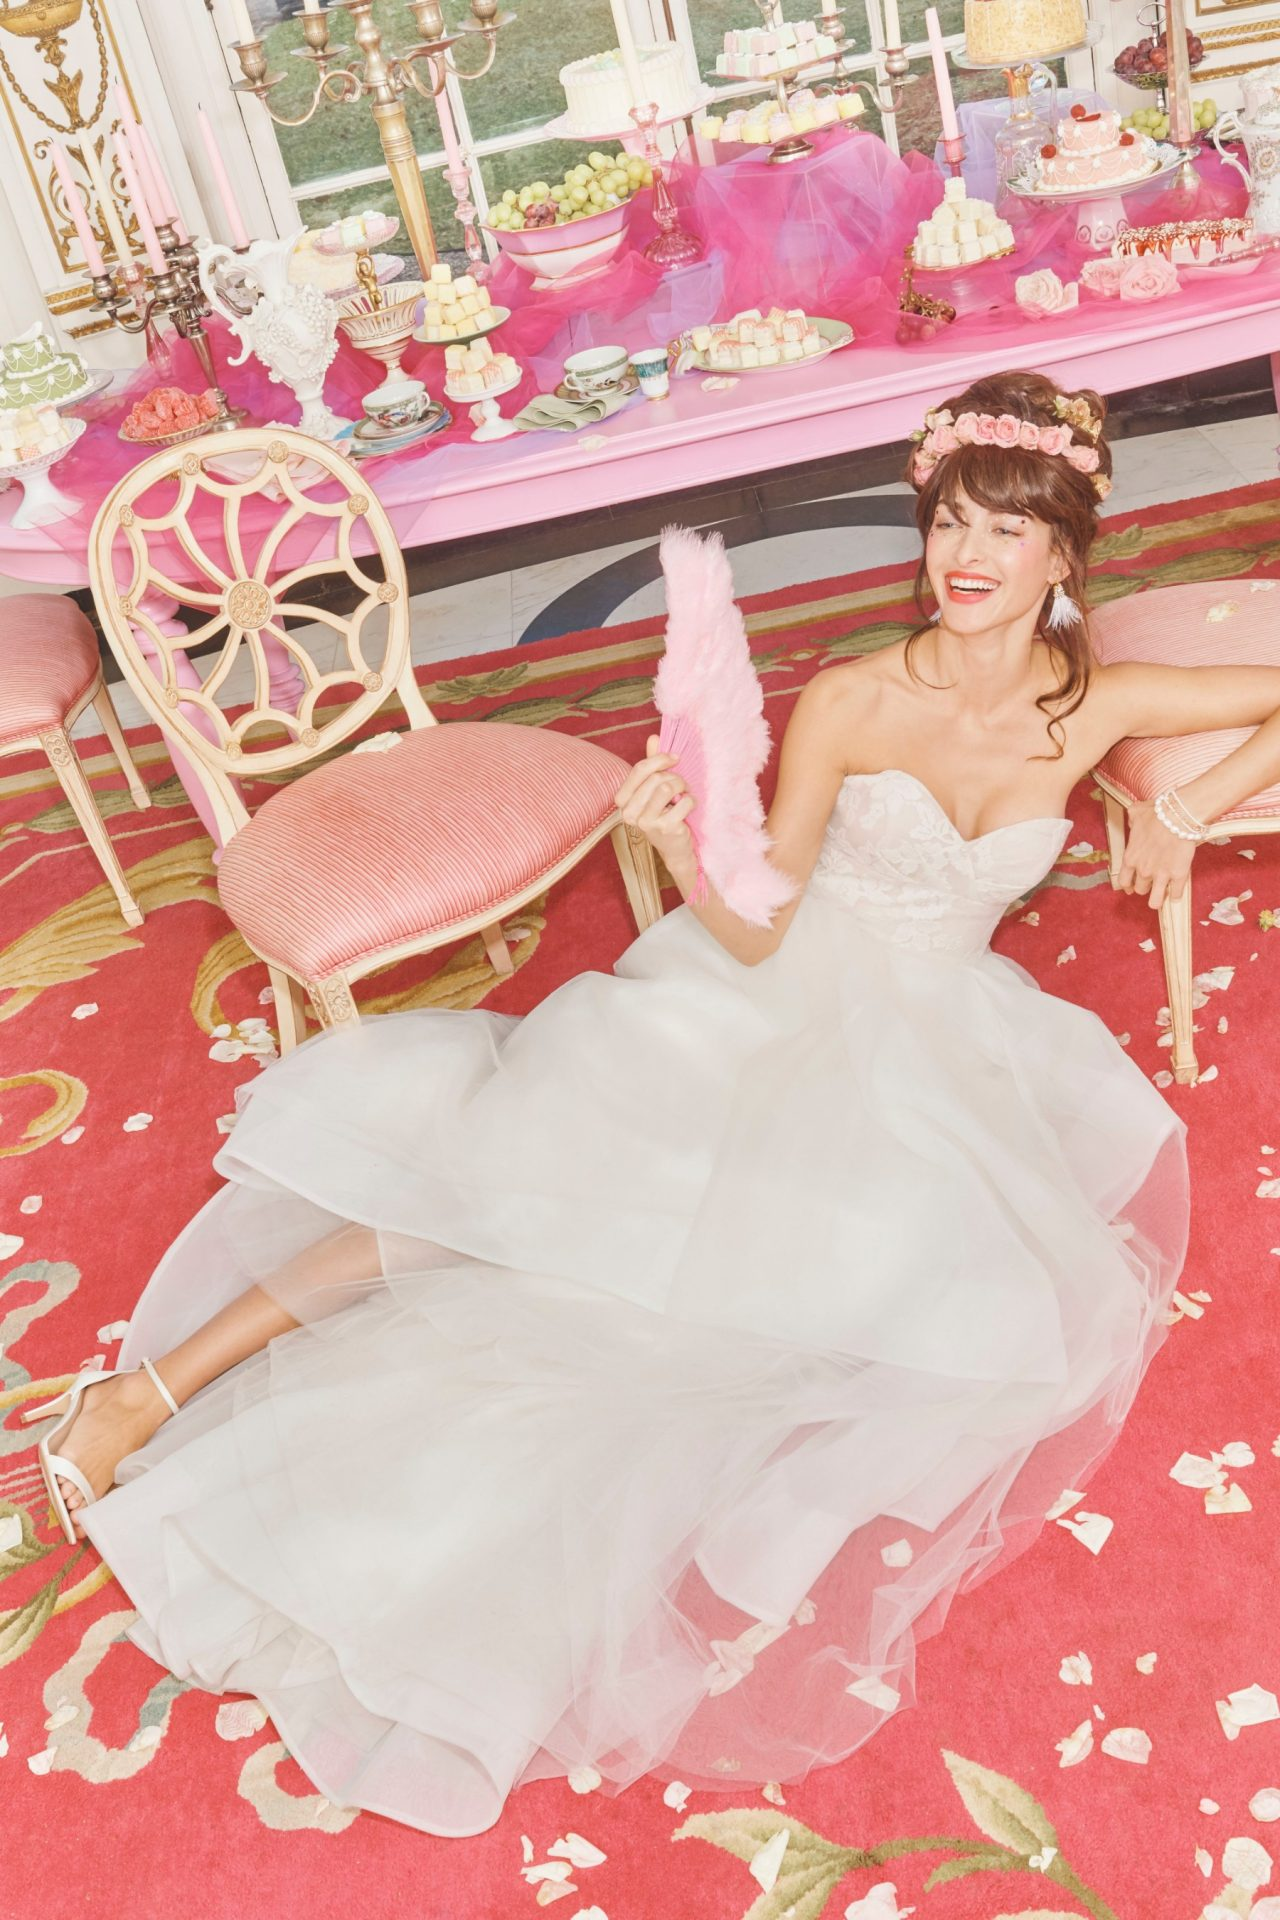 Anthropologie Launches New Wedding Collection